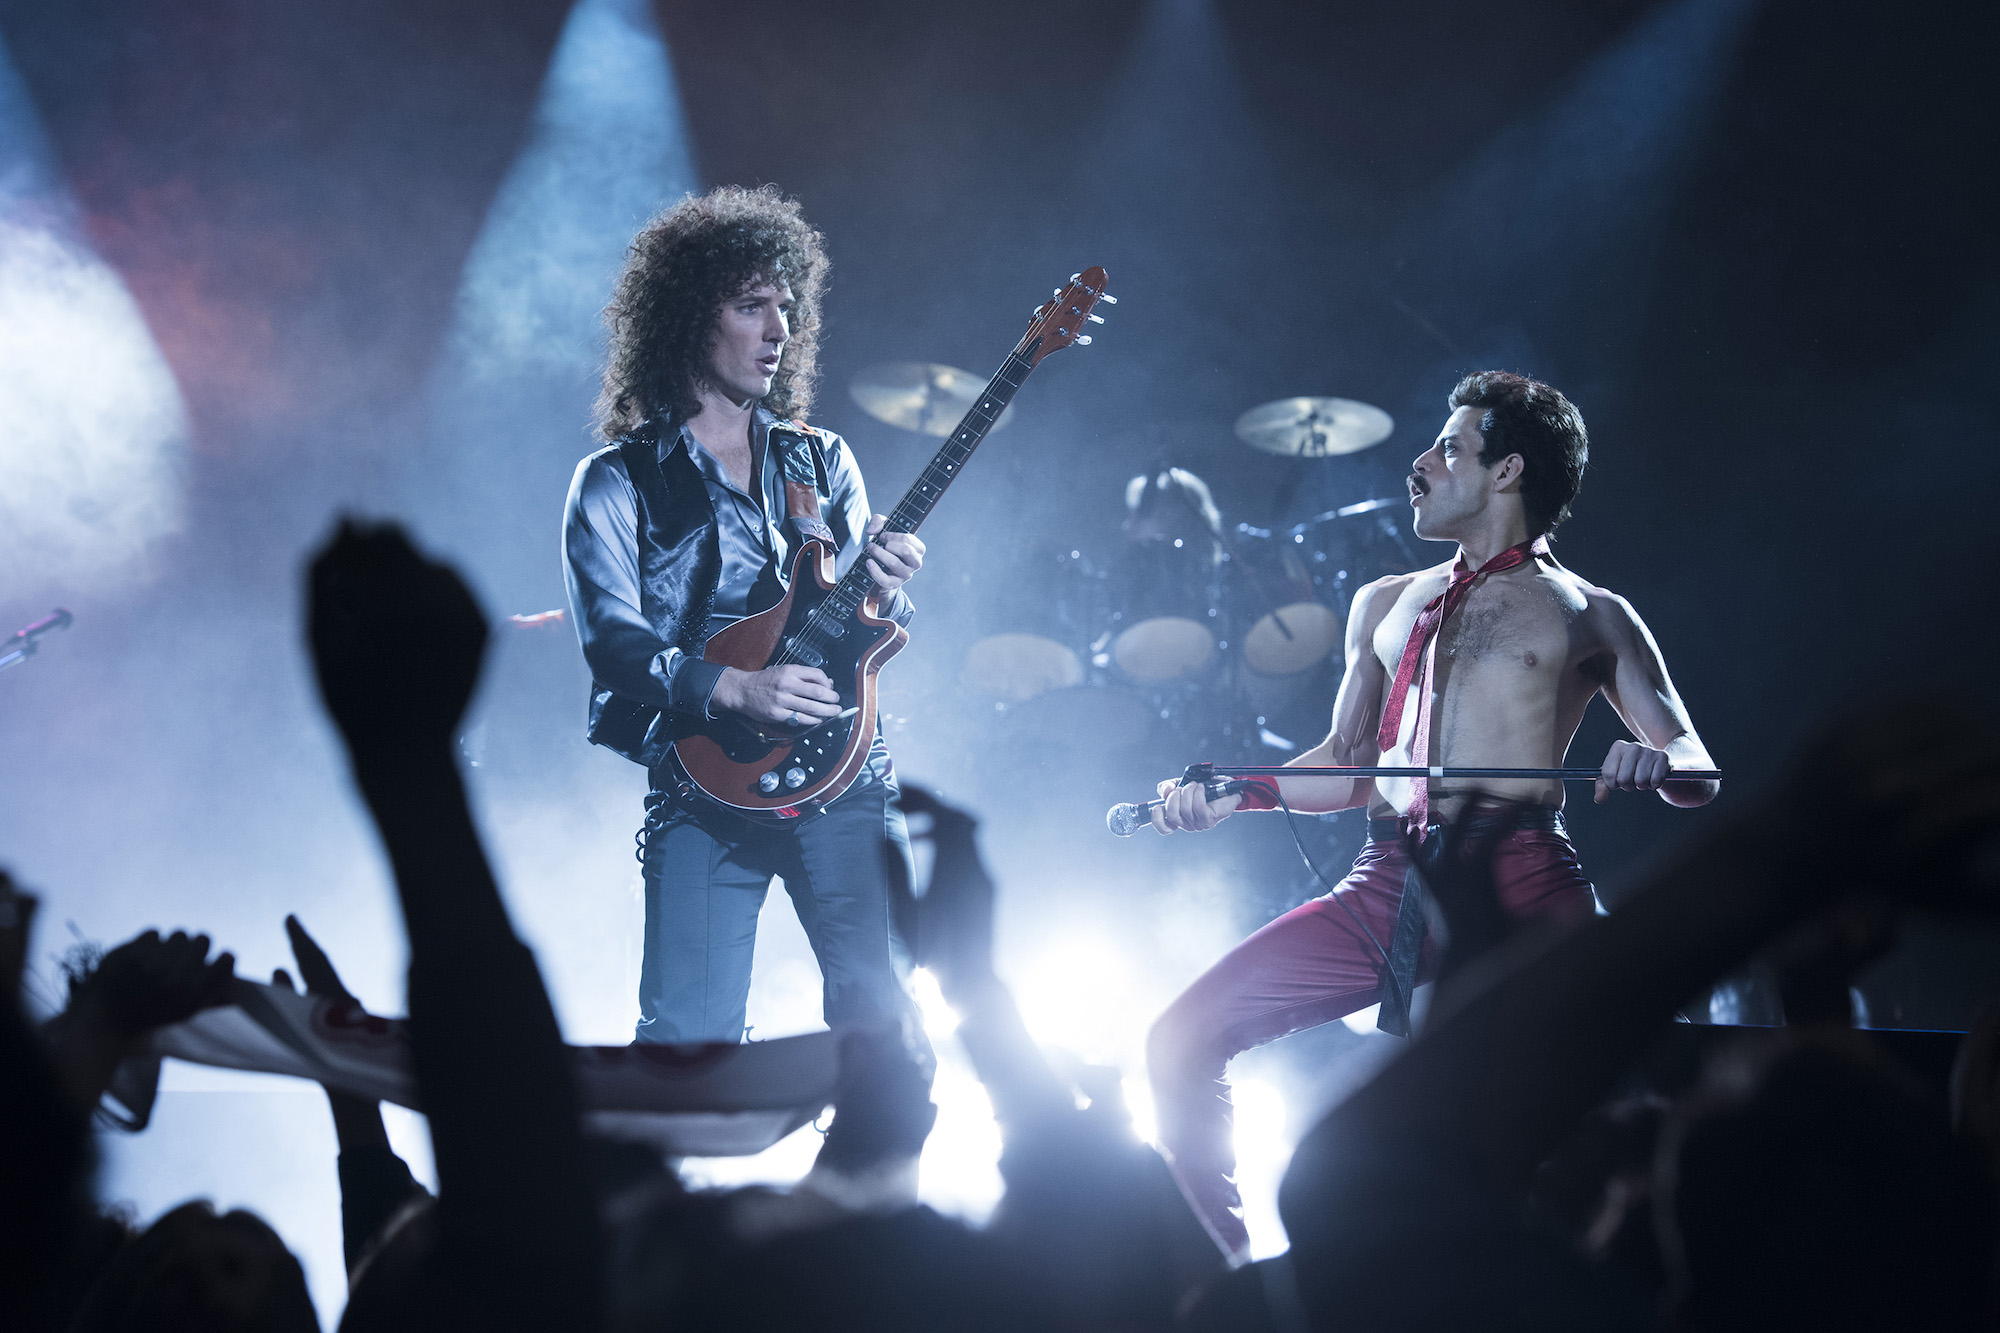 Queen's Brian May reveals Bohemian Rhapsody movie took 10 years to make